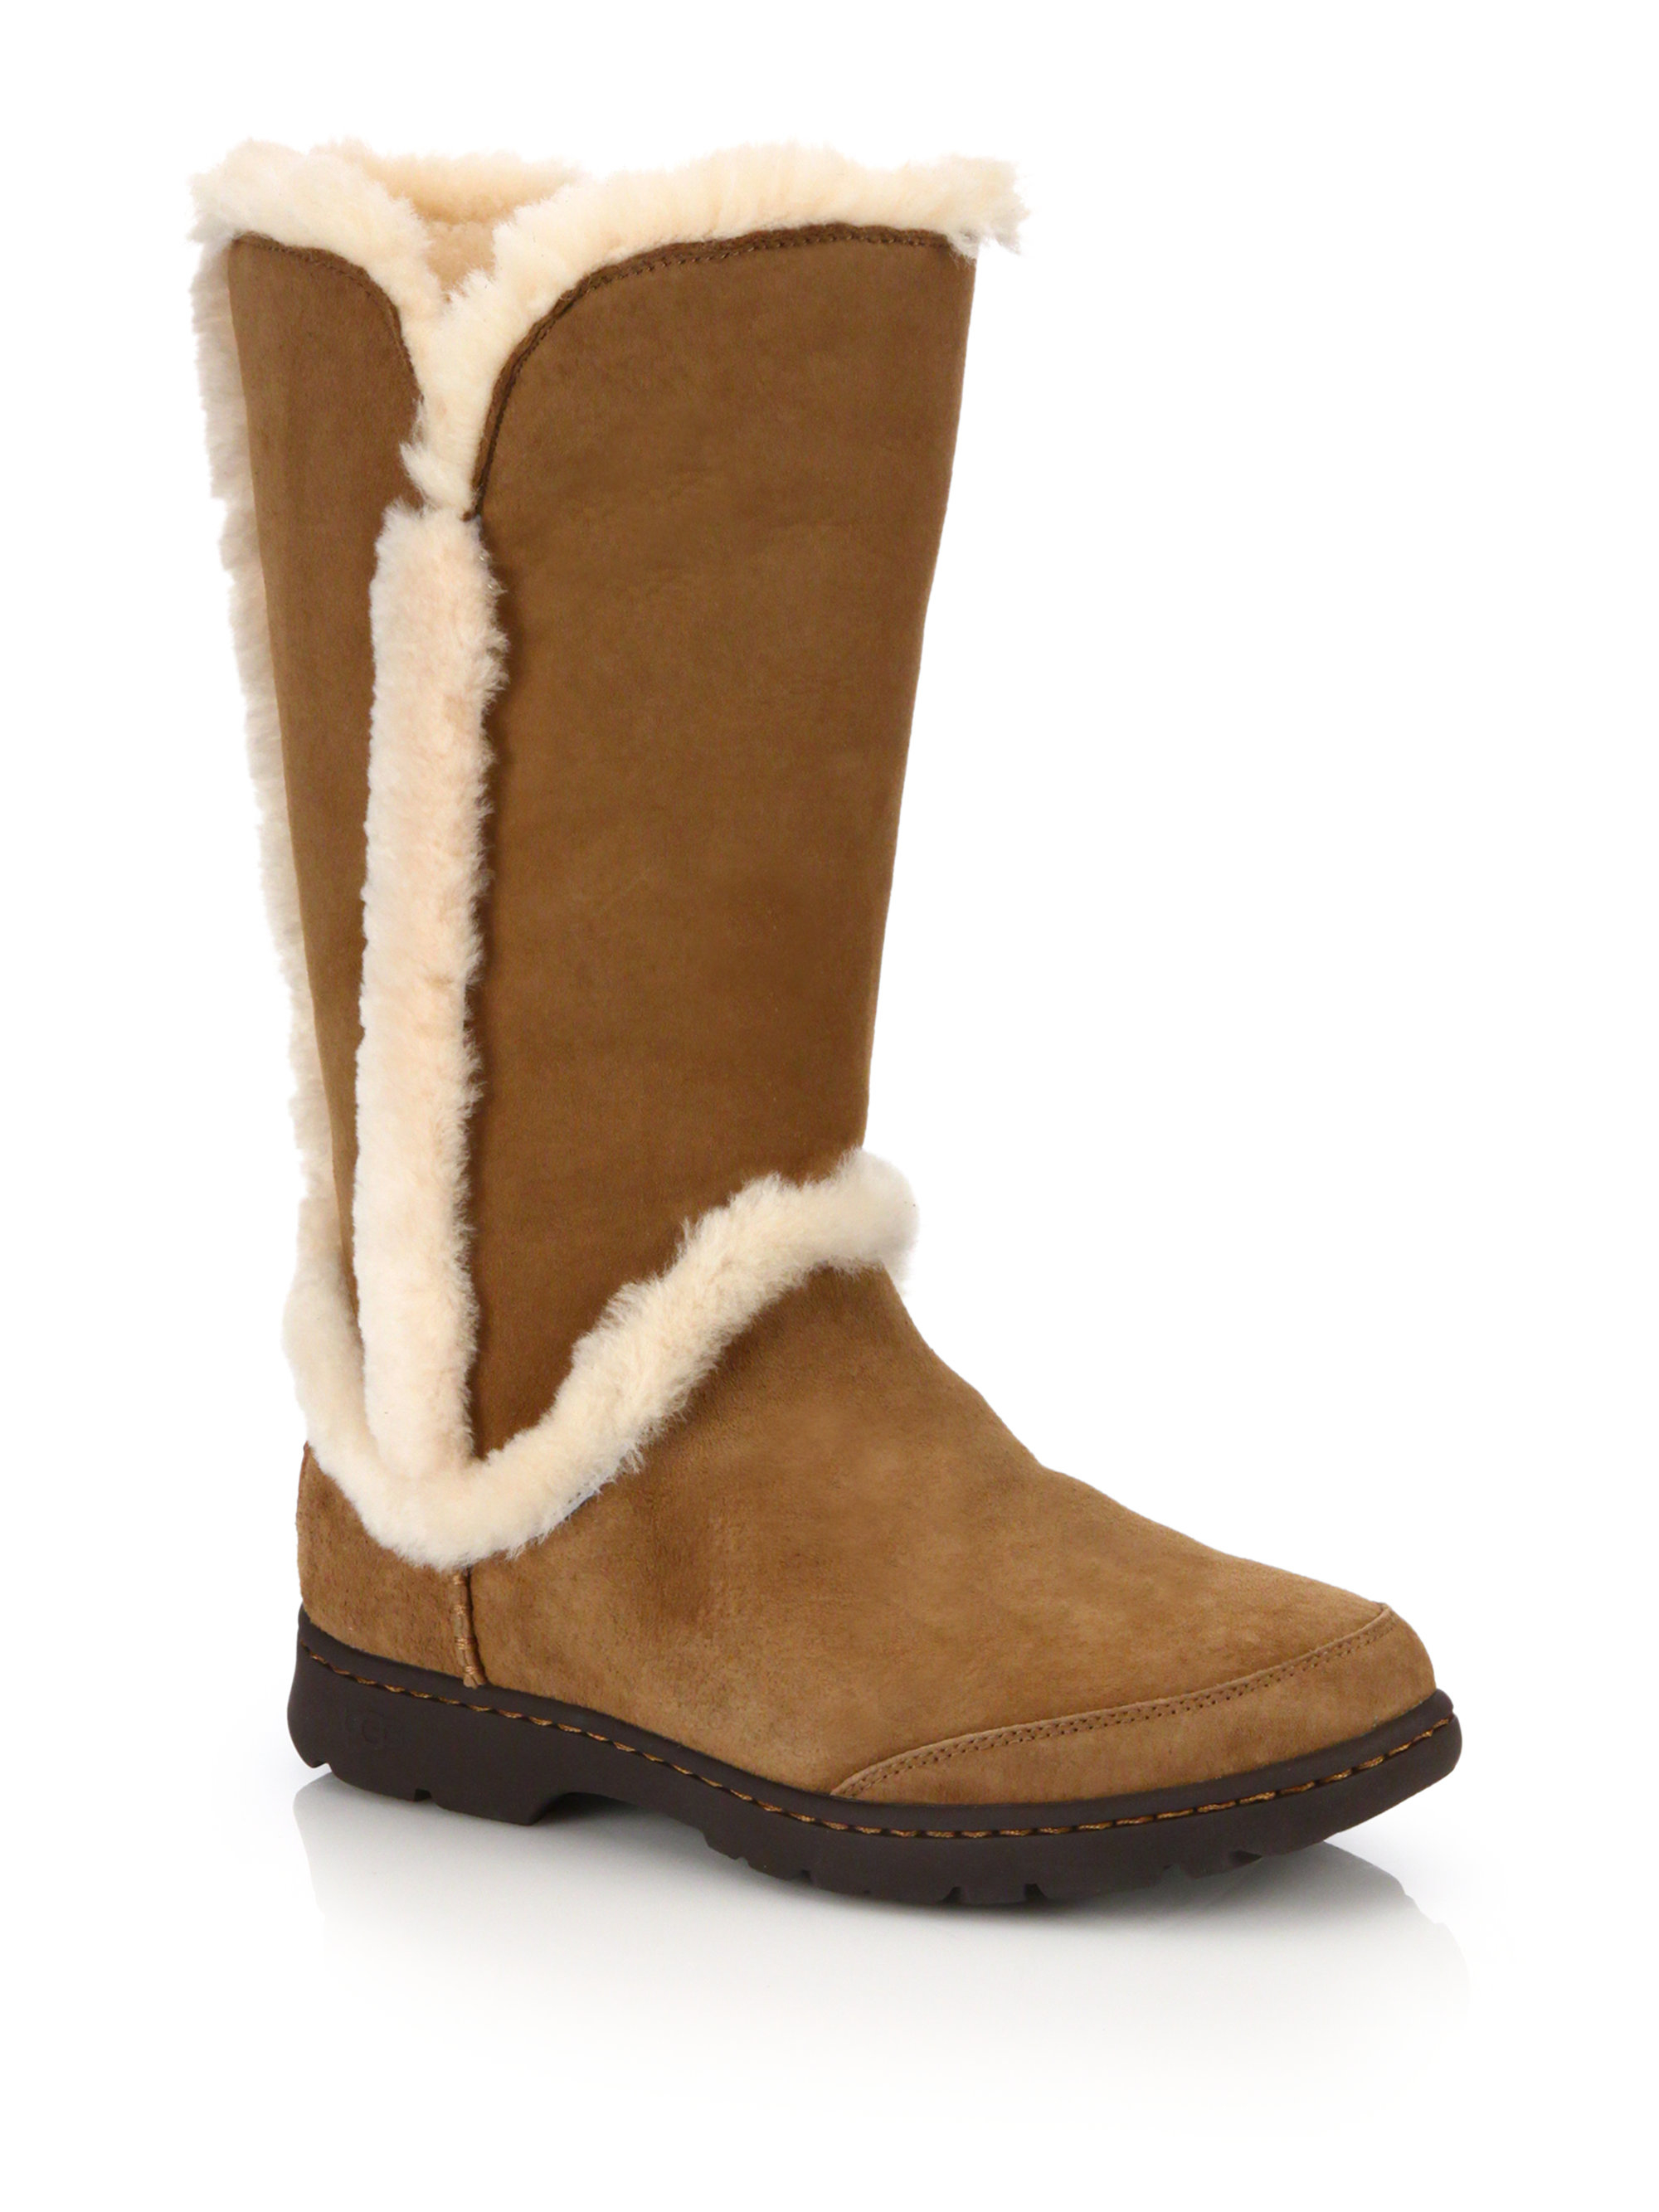 lyst ugg katia suede shearling faux fur boots in brown